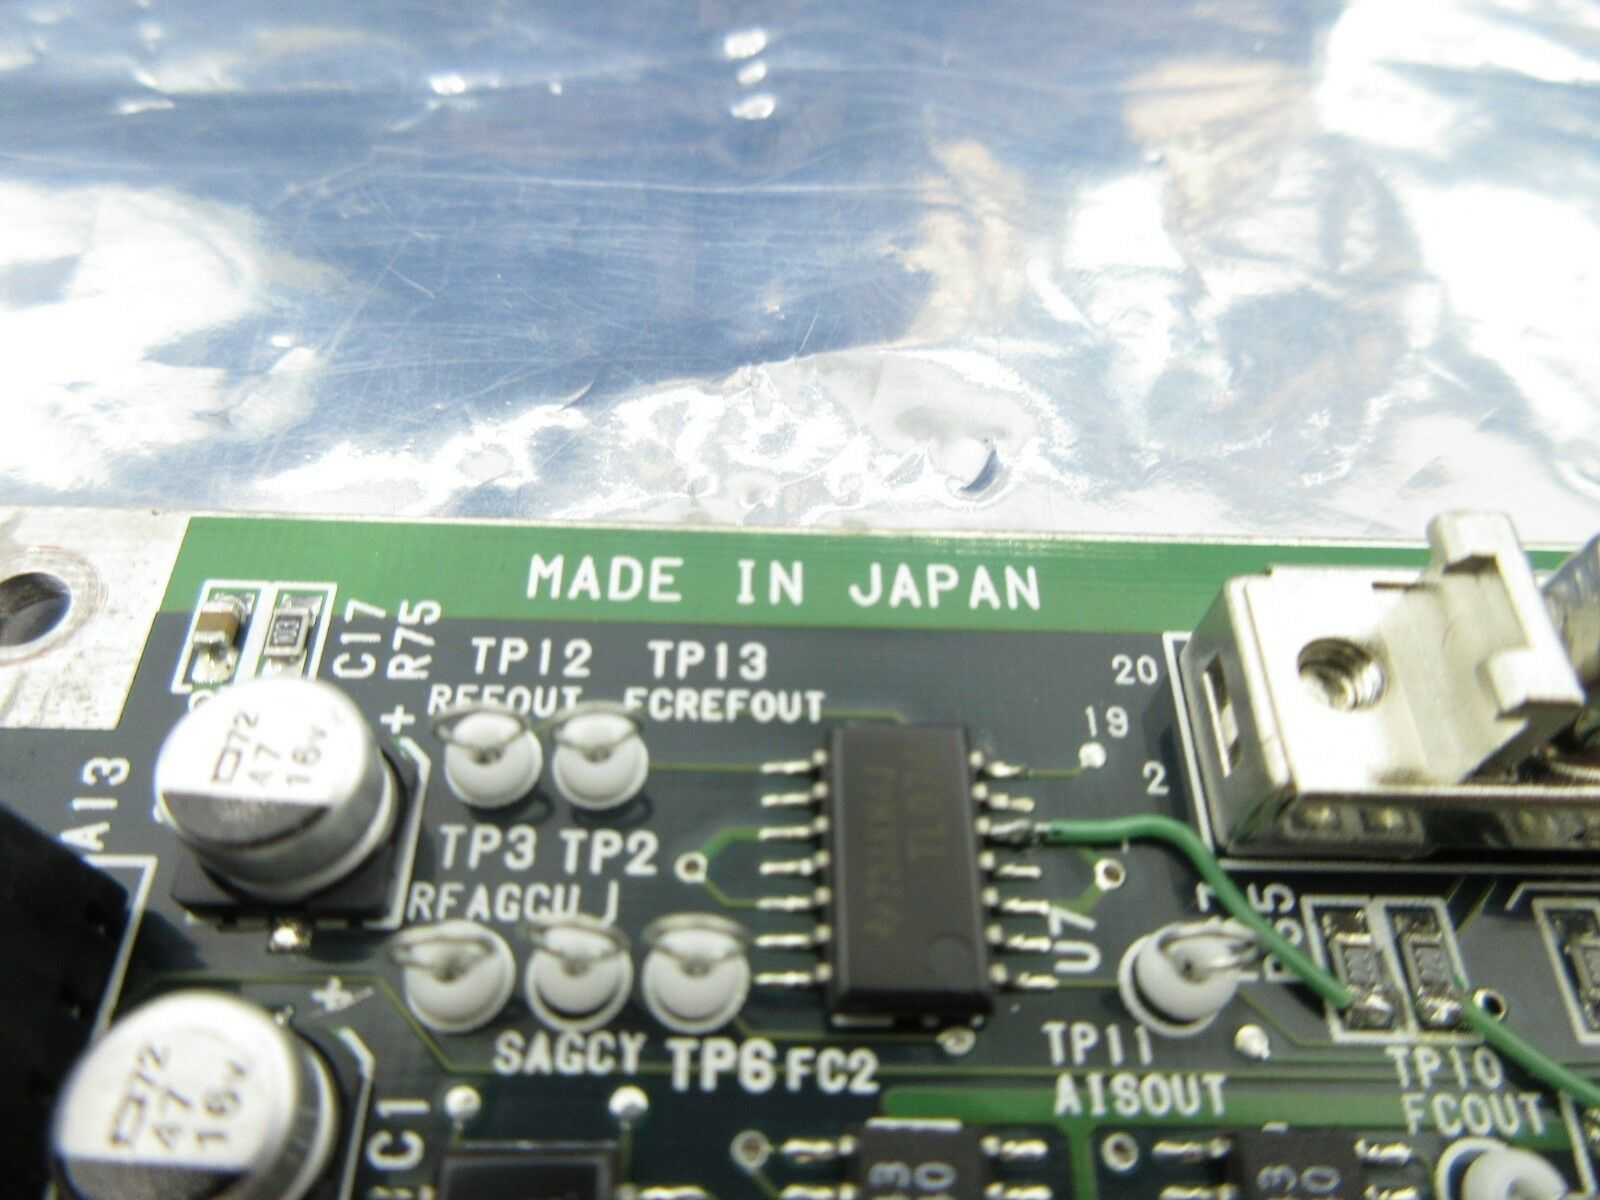 Nikon 4S007-843 Interface Board PCB EX-AIS NSR-S202A Used Working